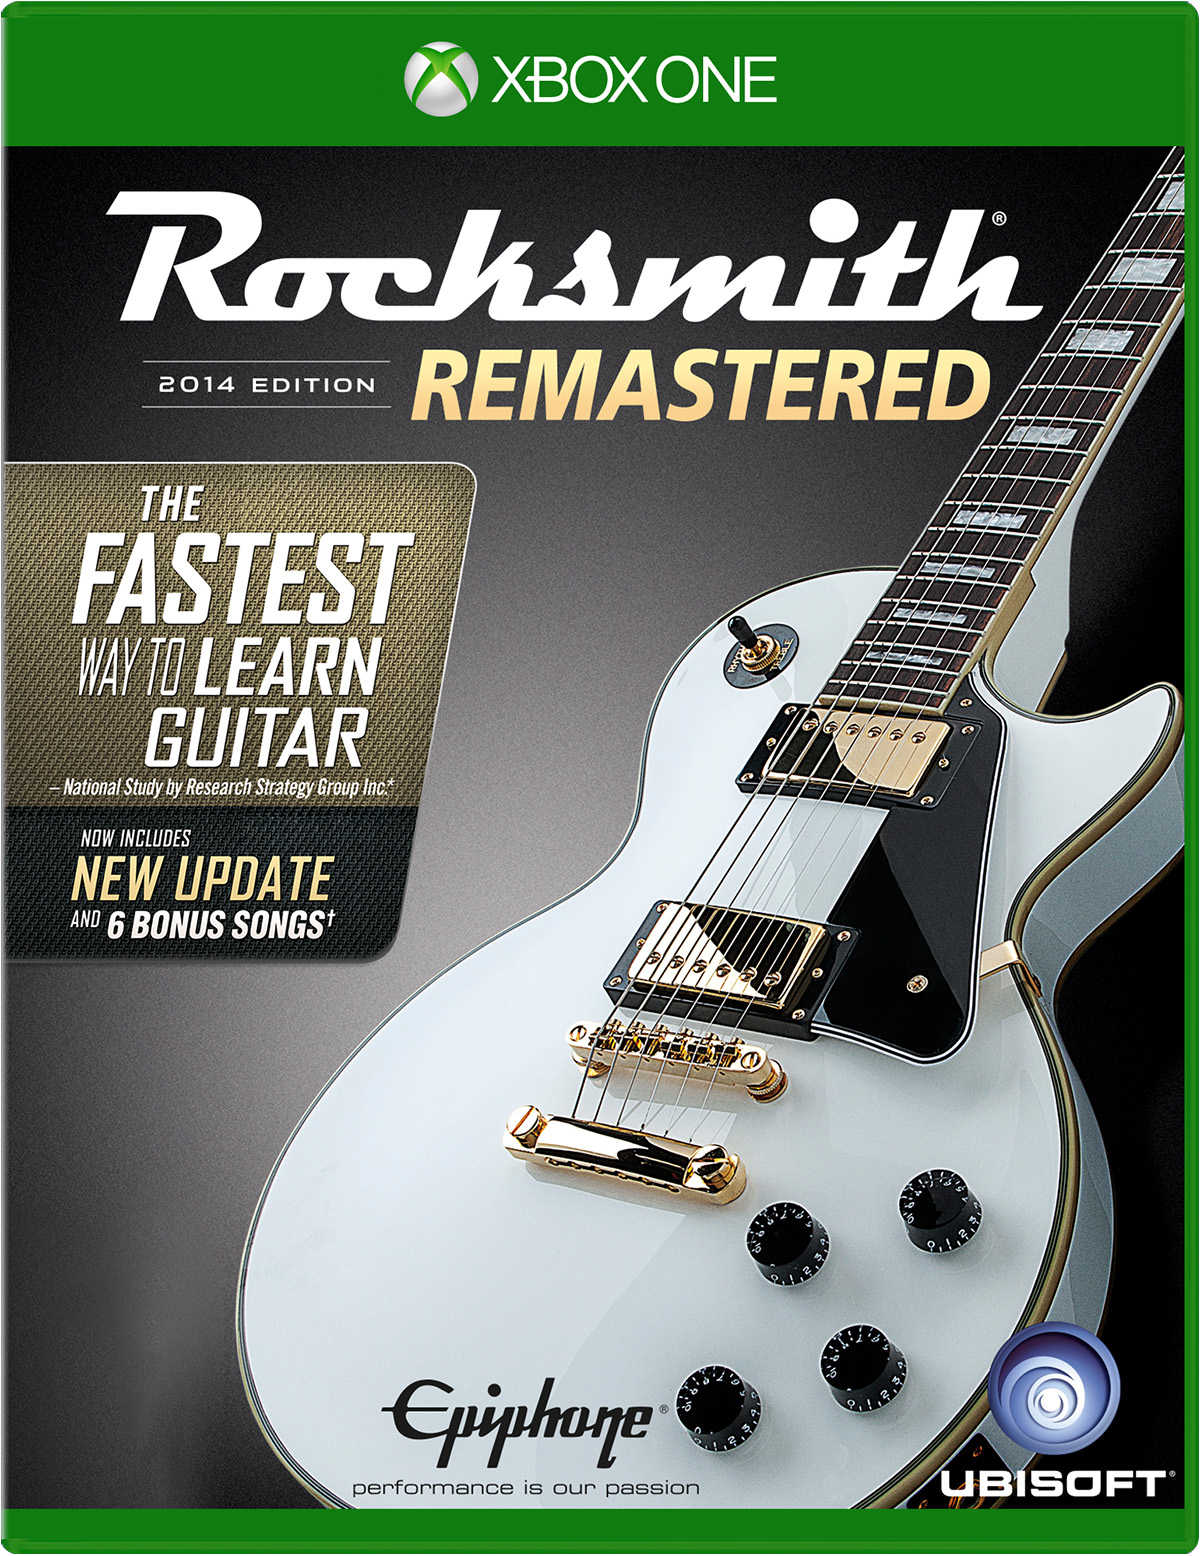 Rocksmith 2014 Edition Remastered for Xbox One